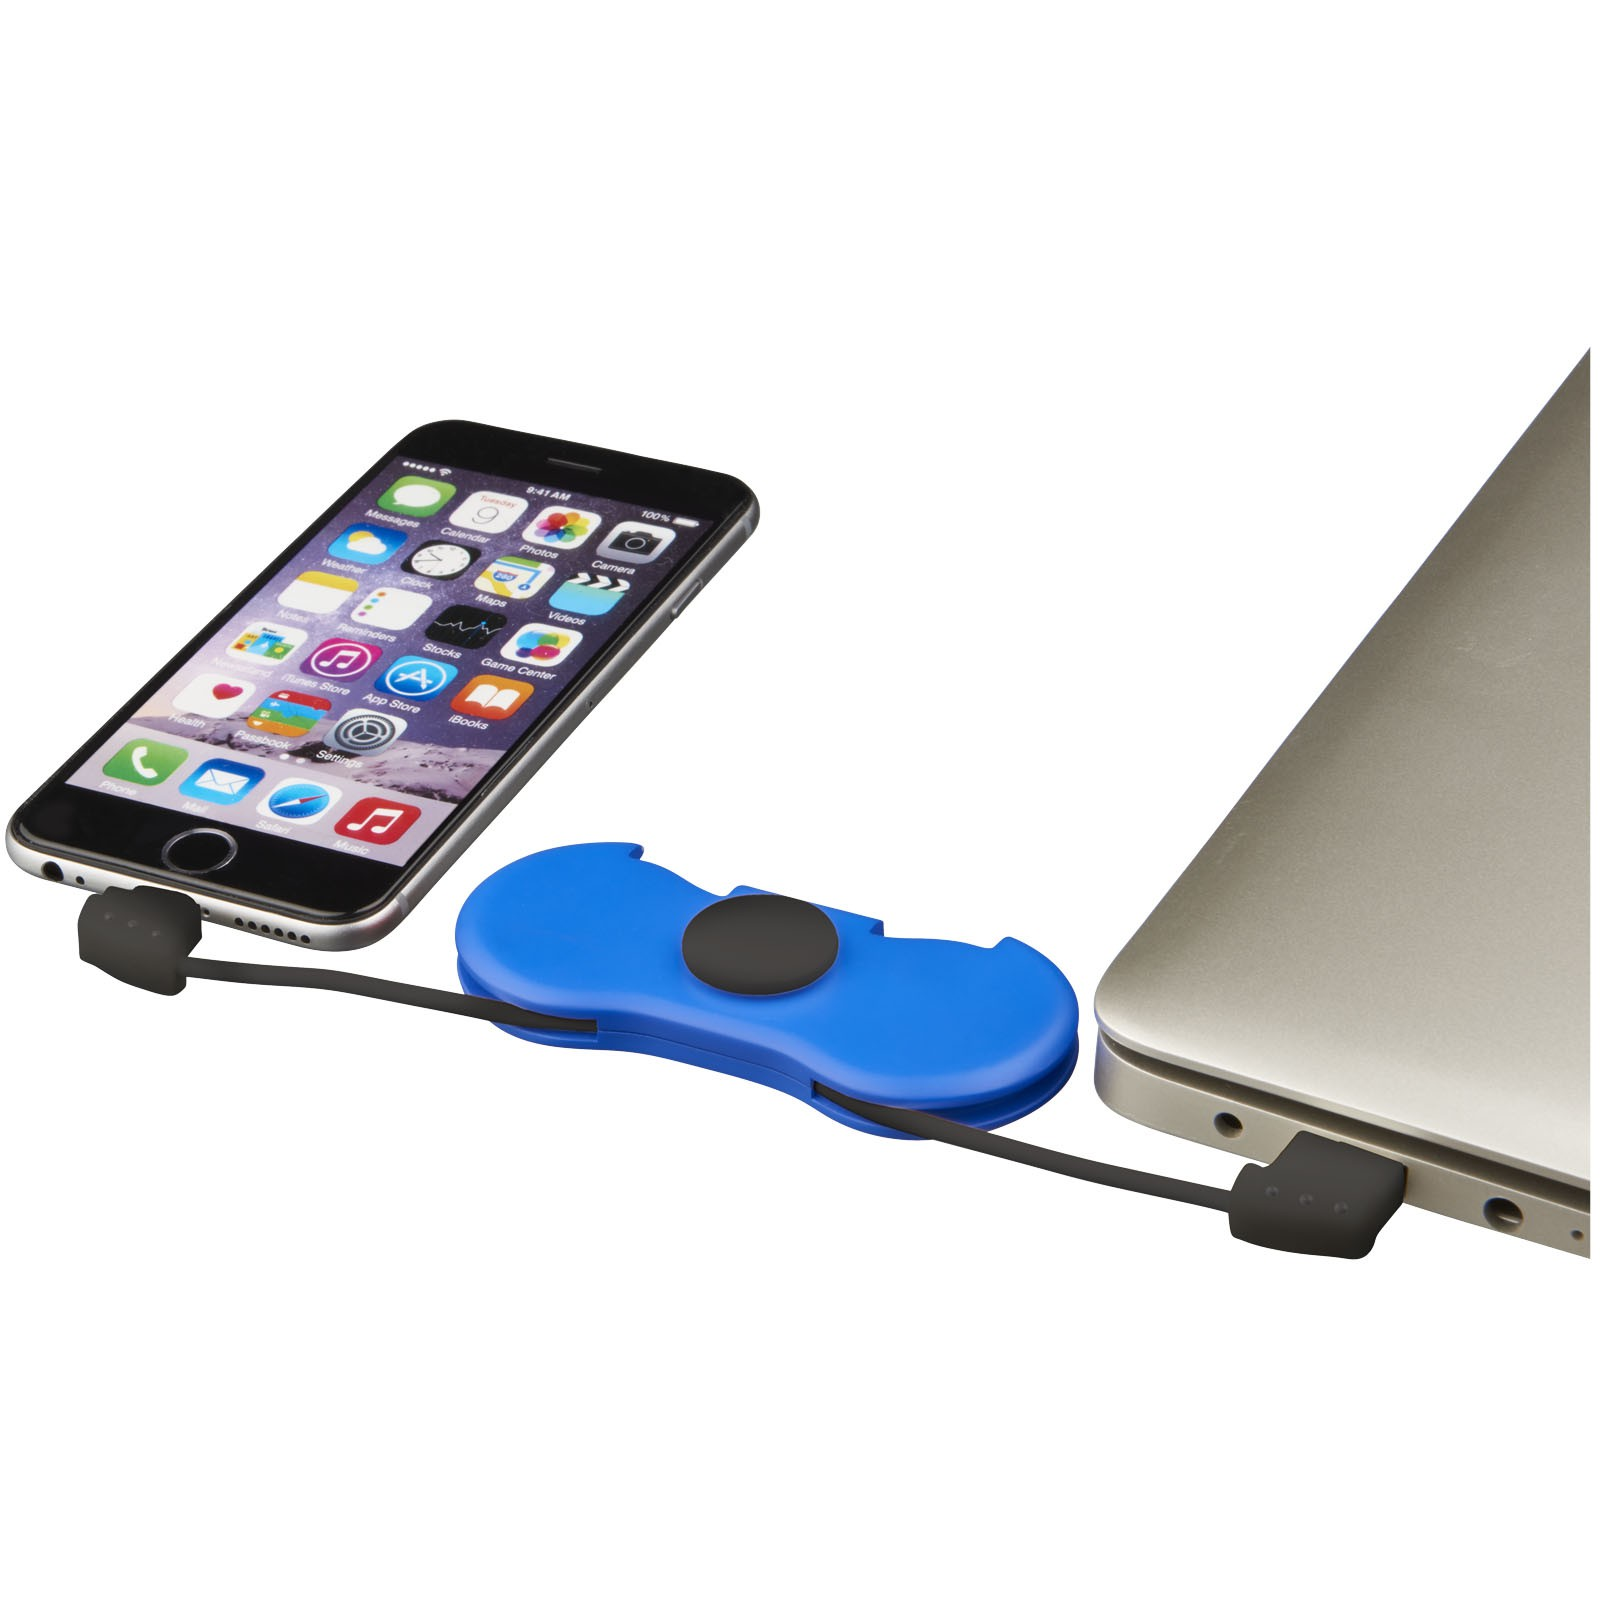 Spin-It Widget with Charging Cable, blue, 9,3 x 4,2 x 1,7 cm ...